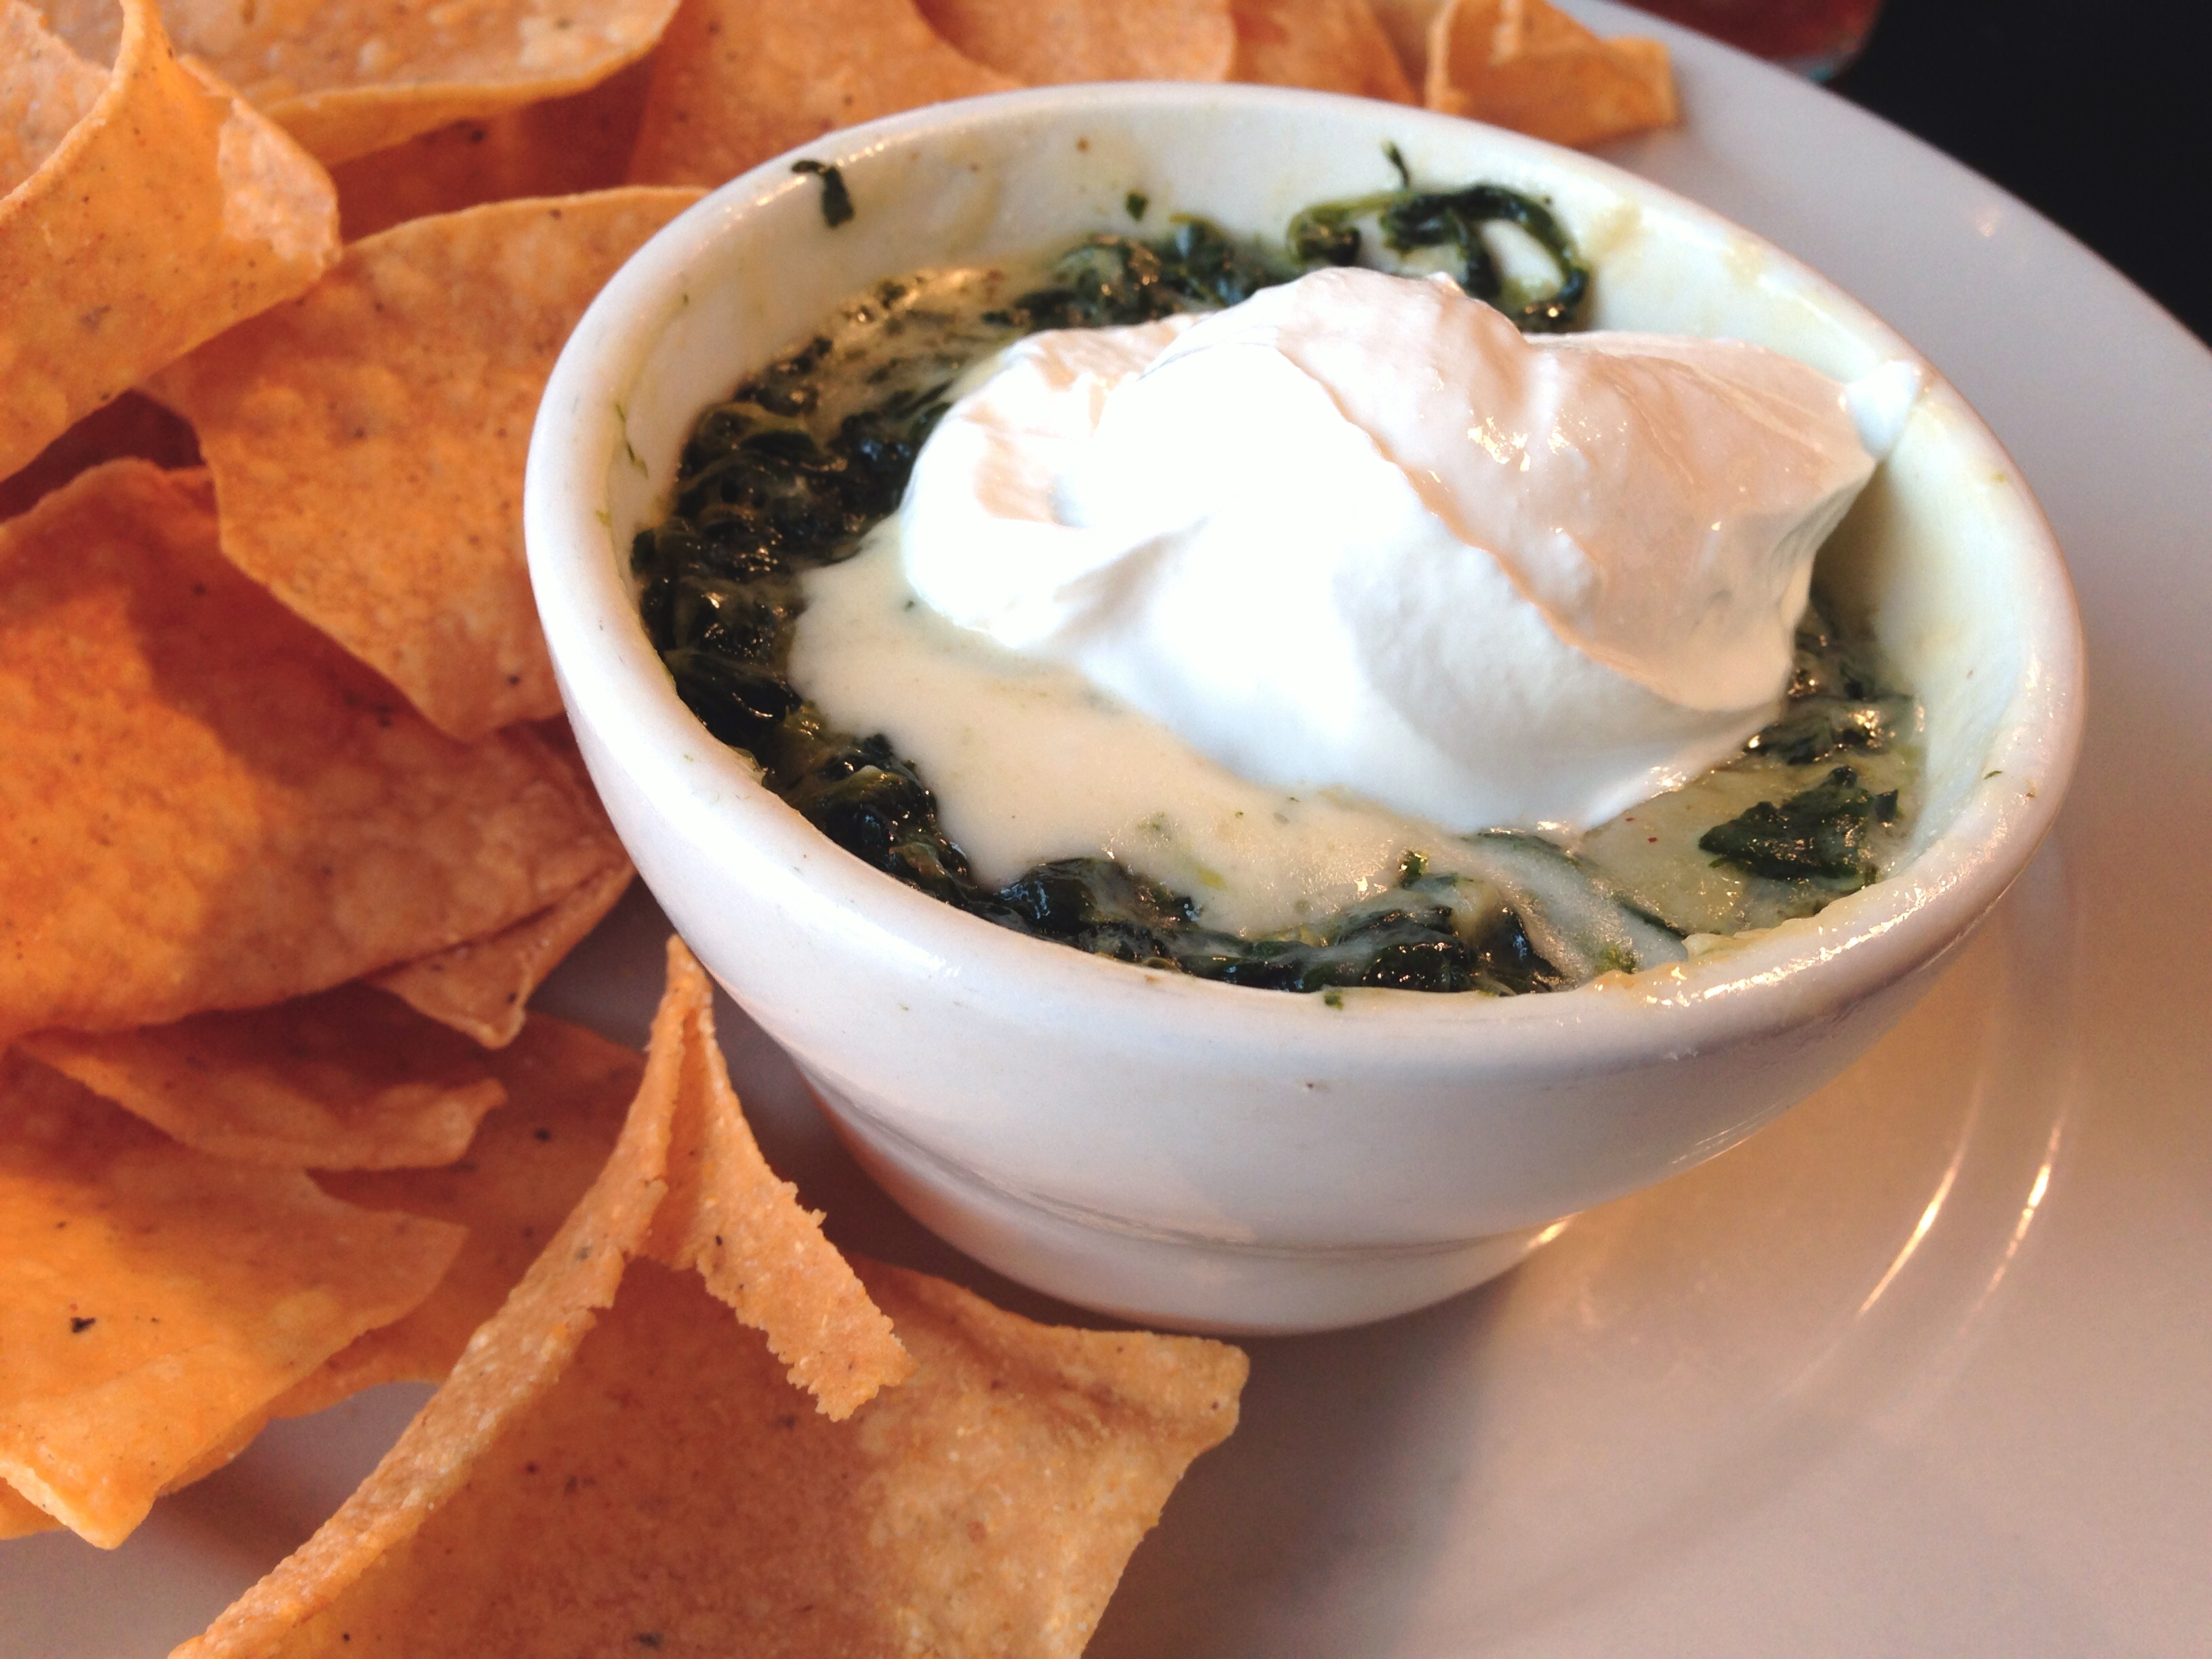 Copycat of T.G.I. Friday's Hot Artichoke and Spinach Dip